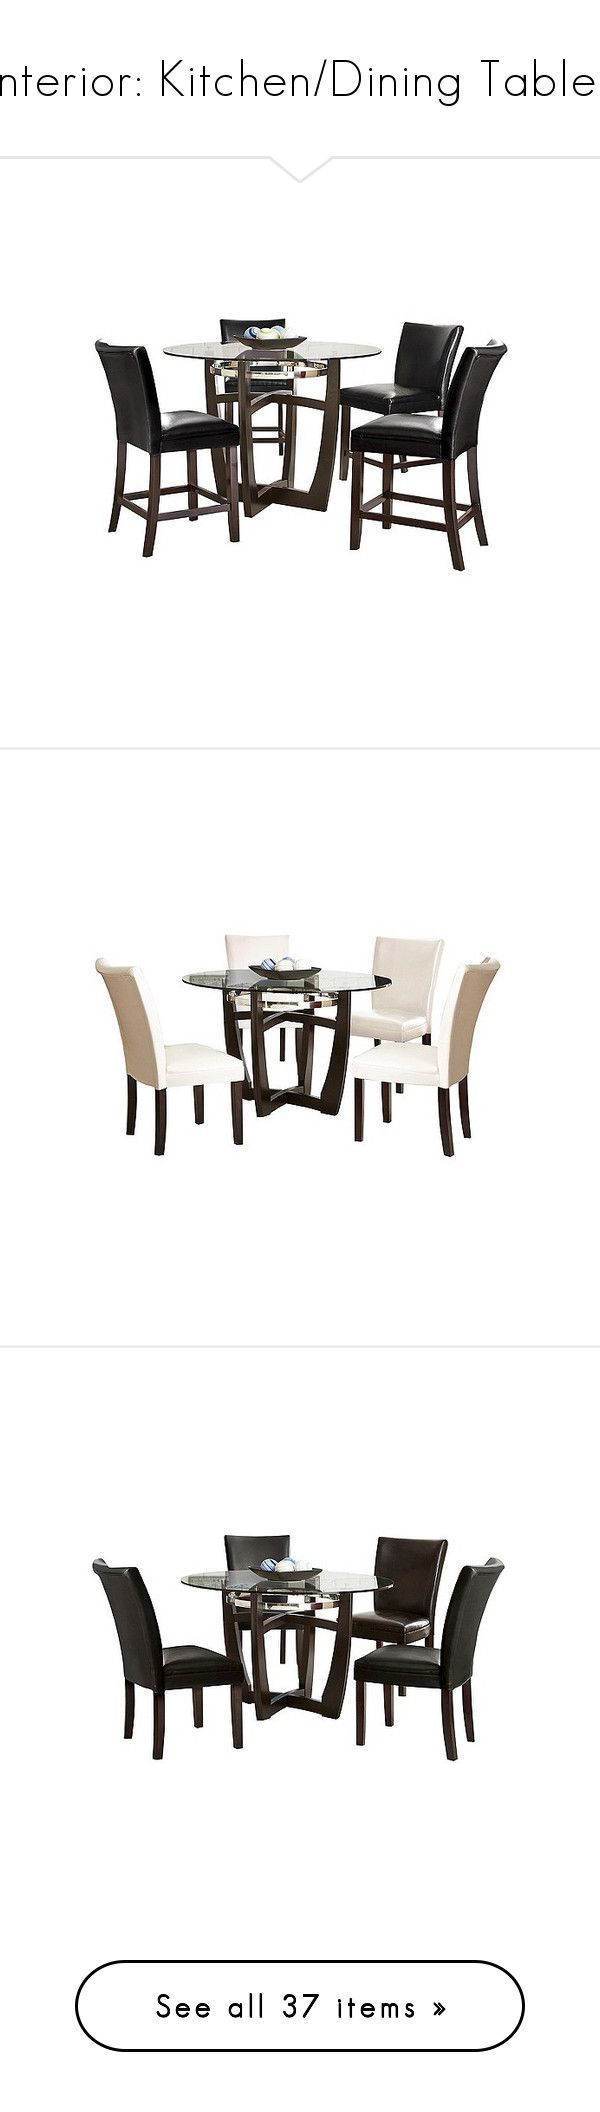 """""""Interior: Kitchen/Dining Tables"""" by jacci0528 ❤ liked on Polyvore featuring home, furniture, tables, dining tables, black, wood kitchen table, wood dining table set, black wood dining set, wood table and chairs and 5pc dining set"""